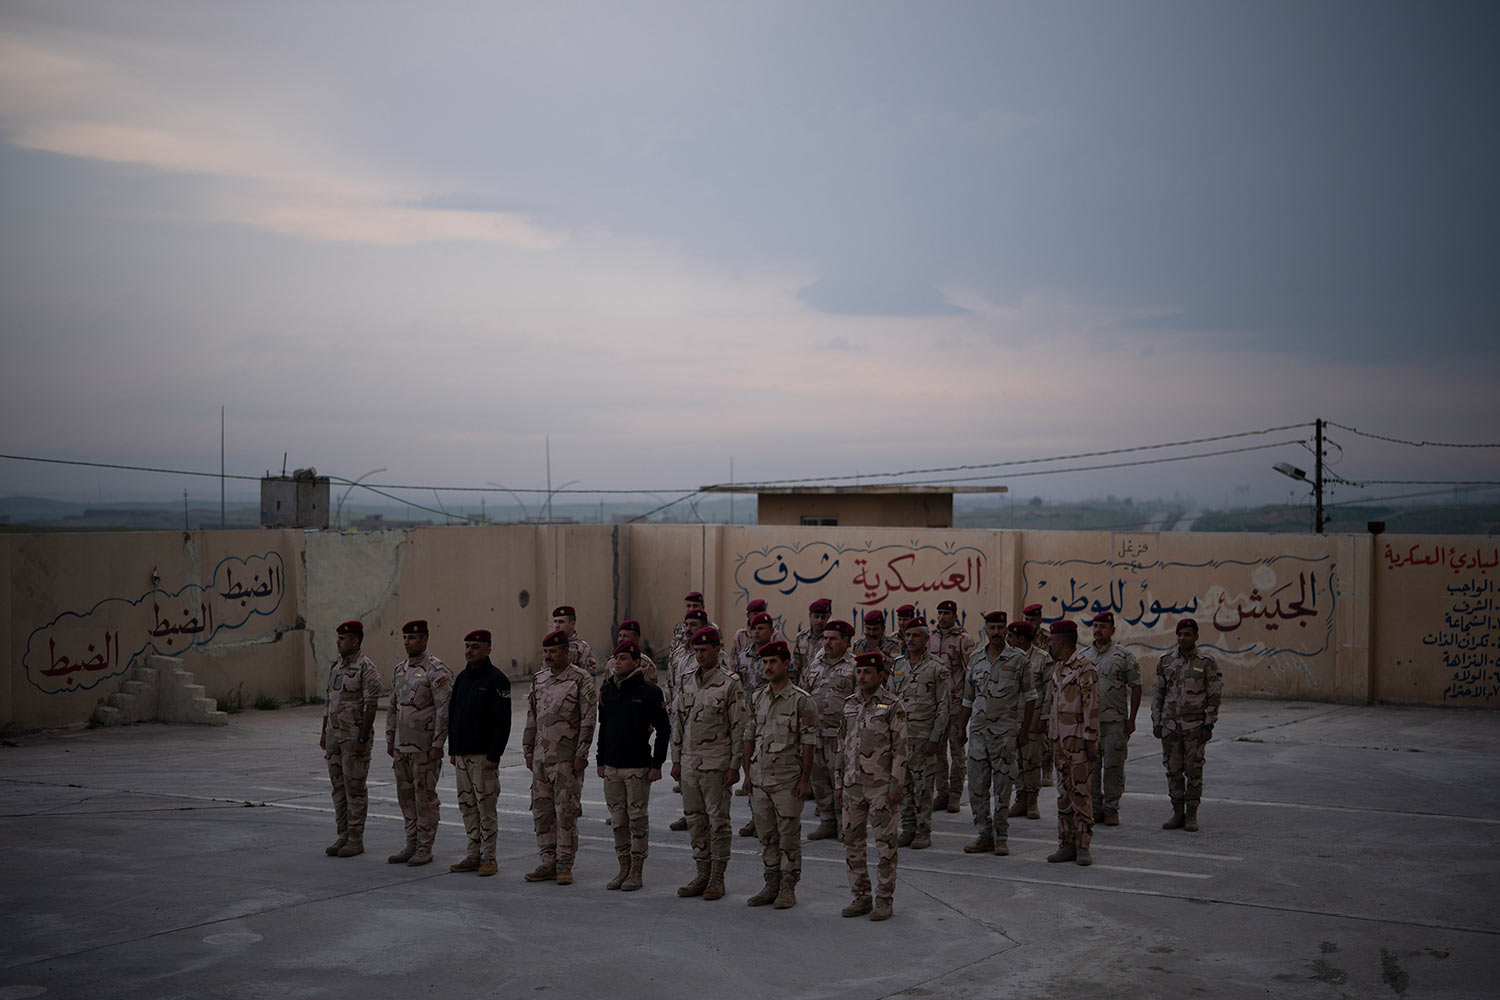 In this April 10, 2019 photo, Iraqi army 20th division soldiers stand in formation in a military base in Badoush, Iraq. (AP Photo/Felipe Dana)